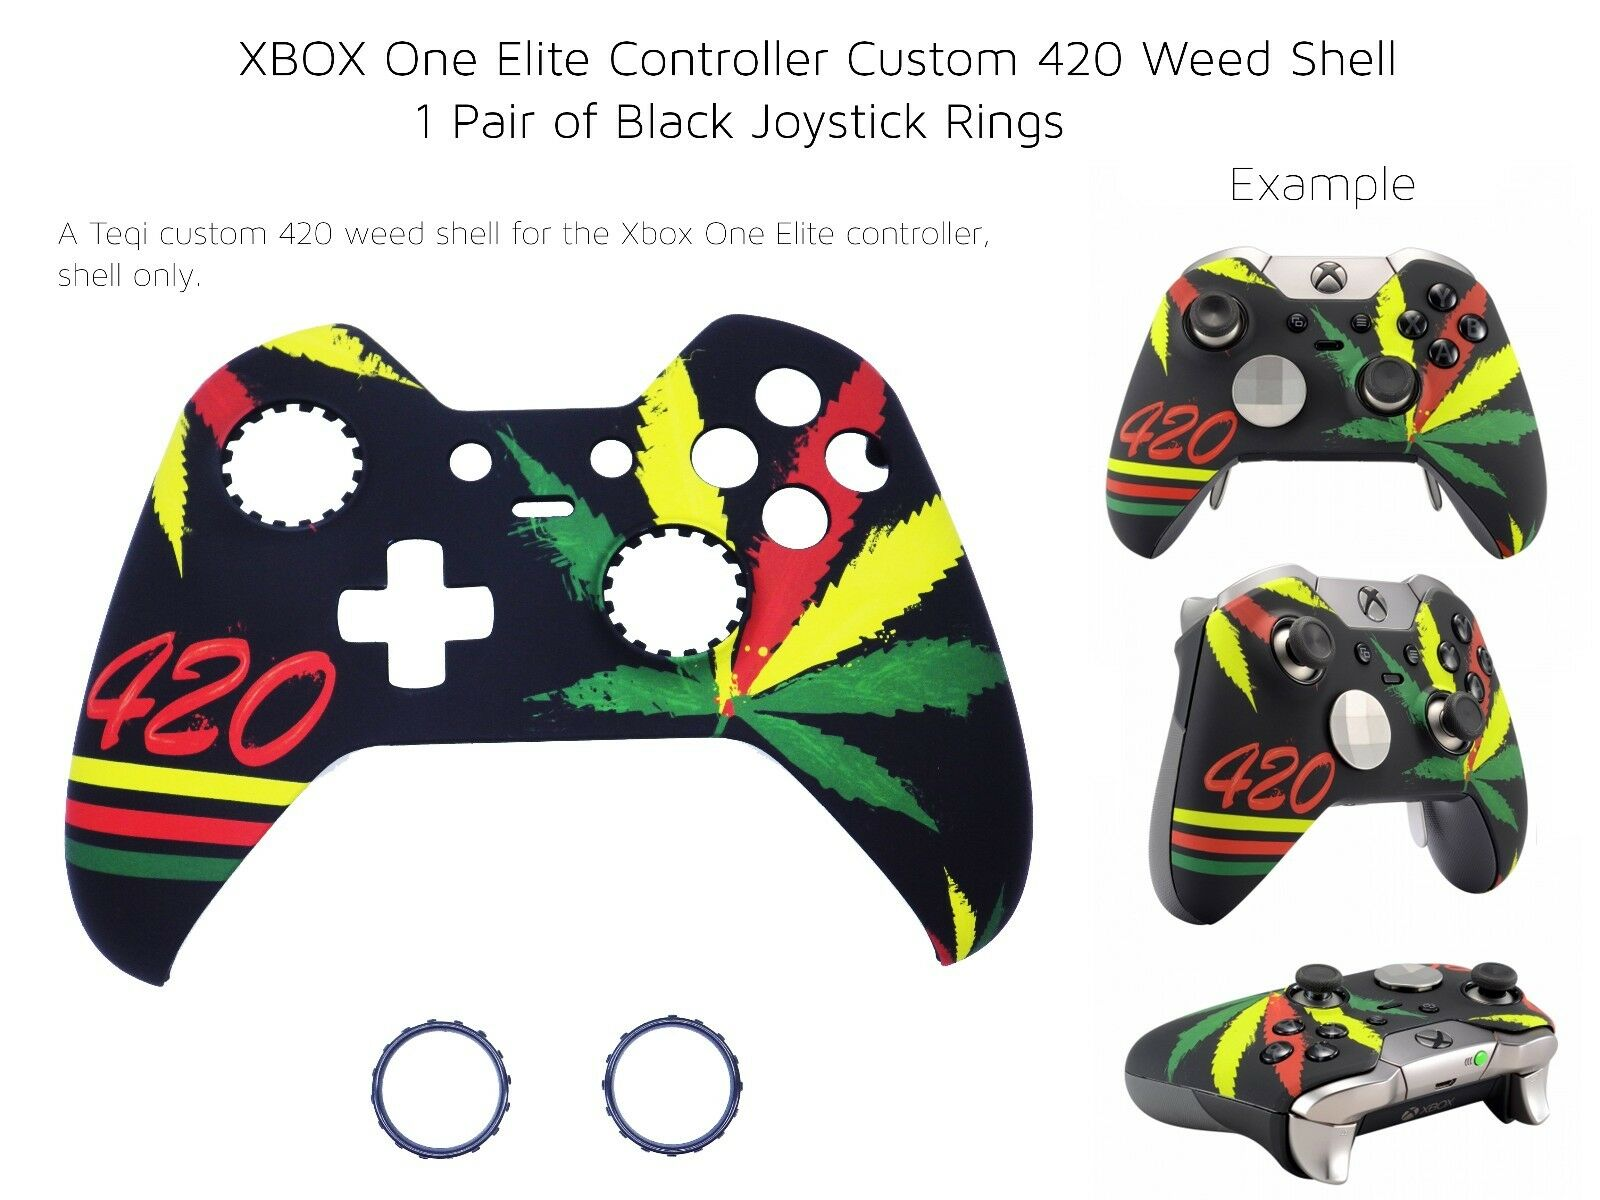 Details about New Xbox One Elite Controller 420 Weed Kush Ganja Front Shell  Unique Mod Rings